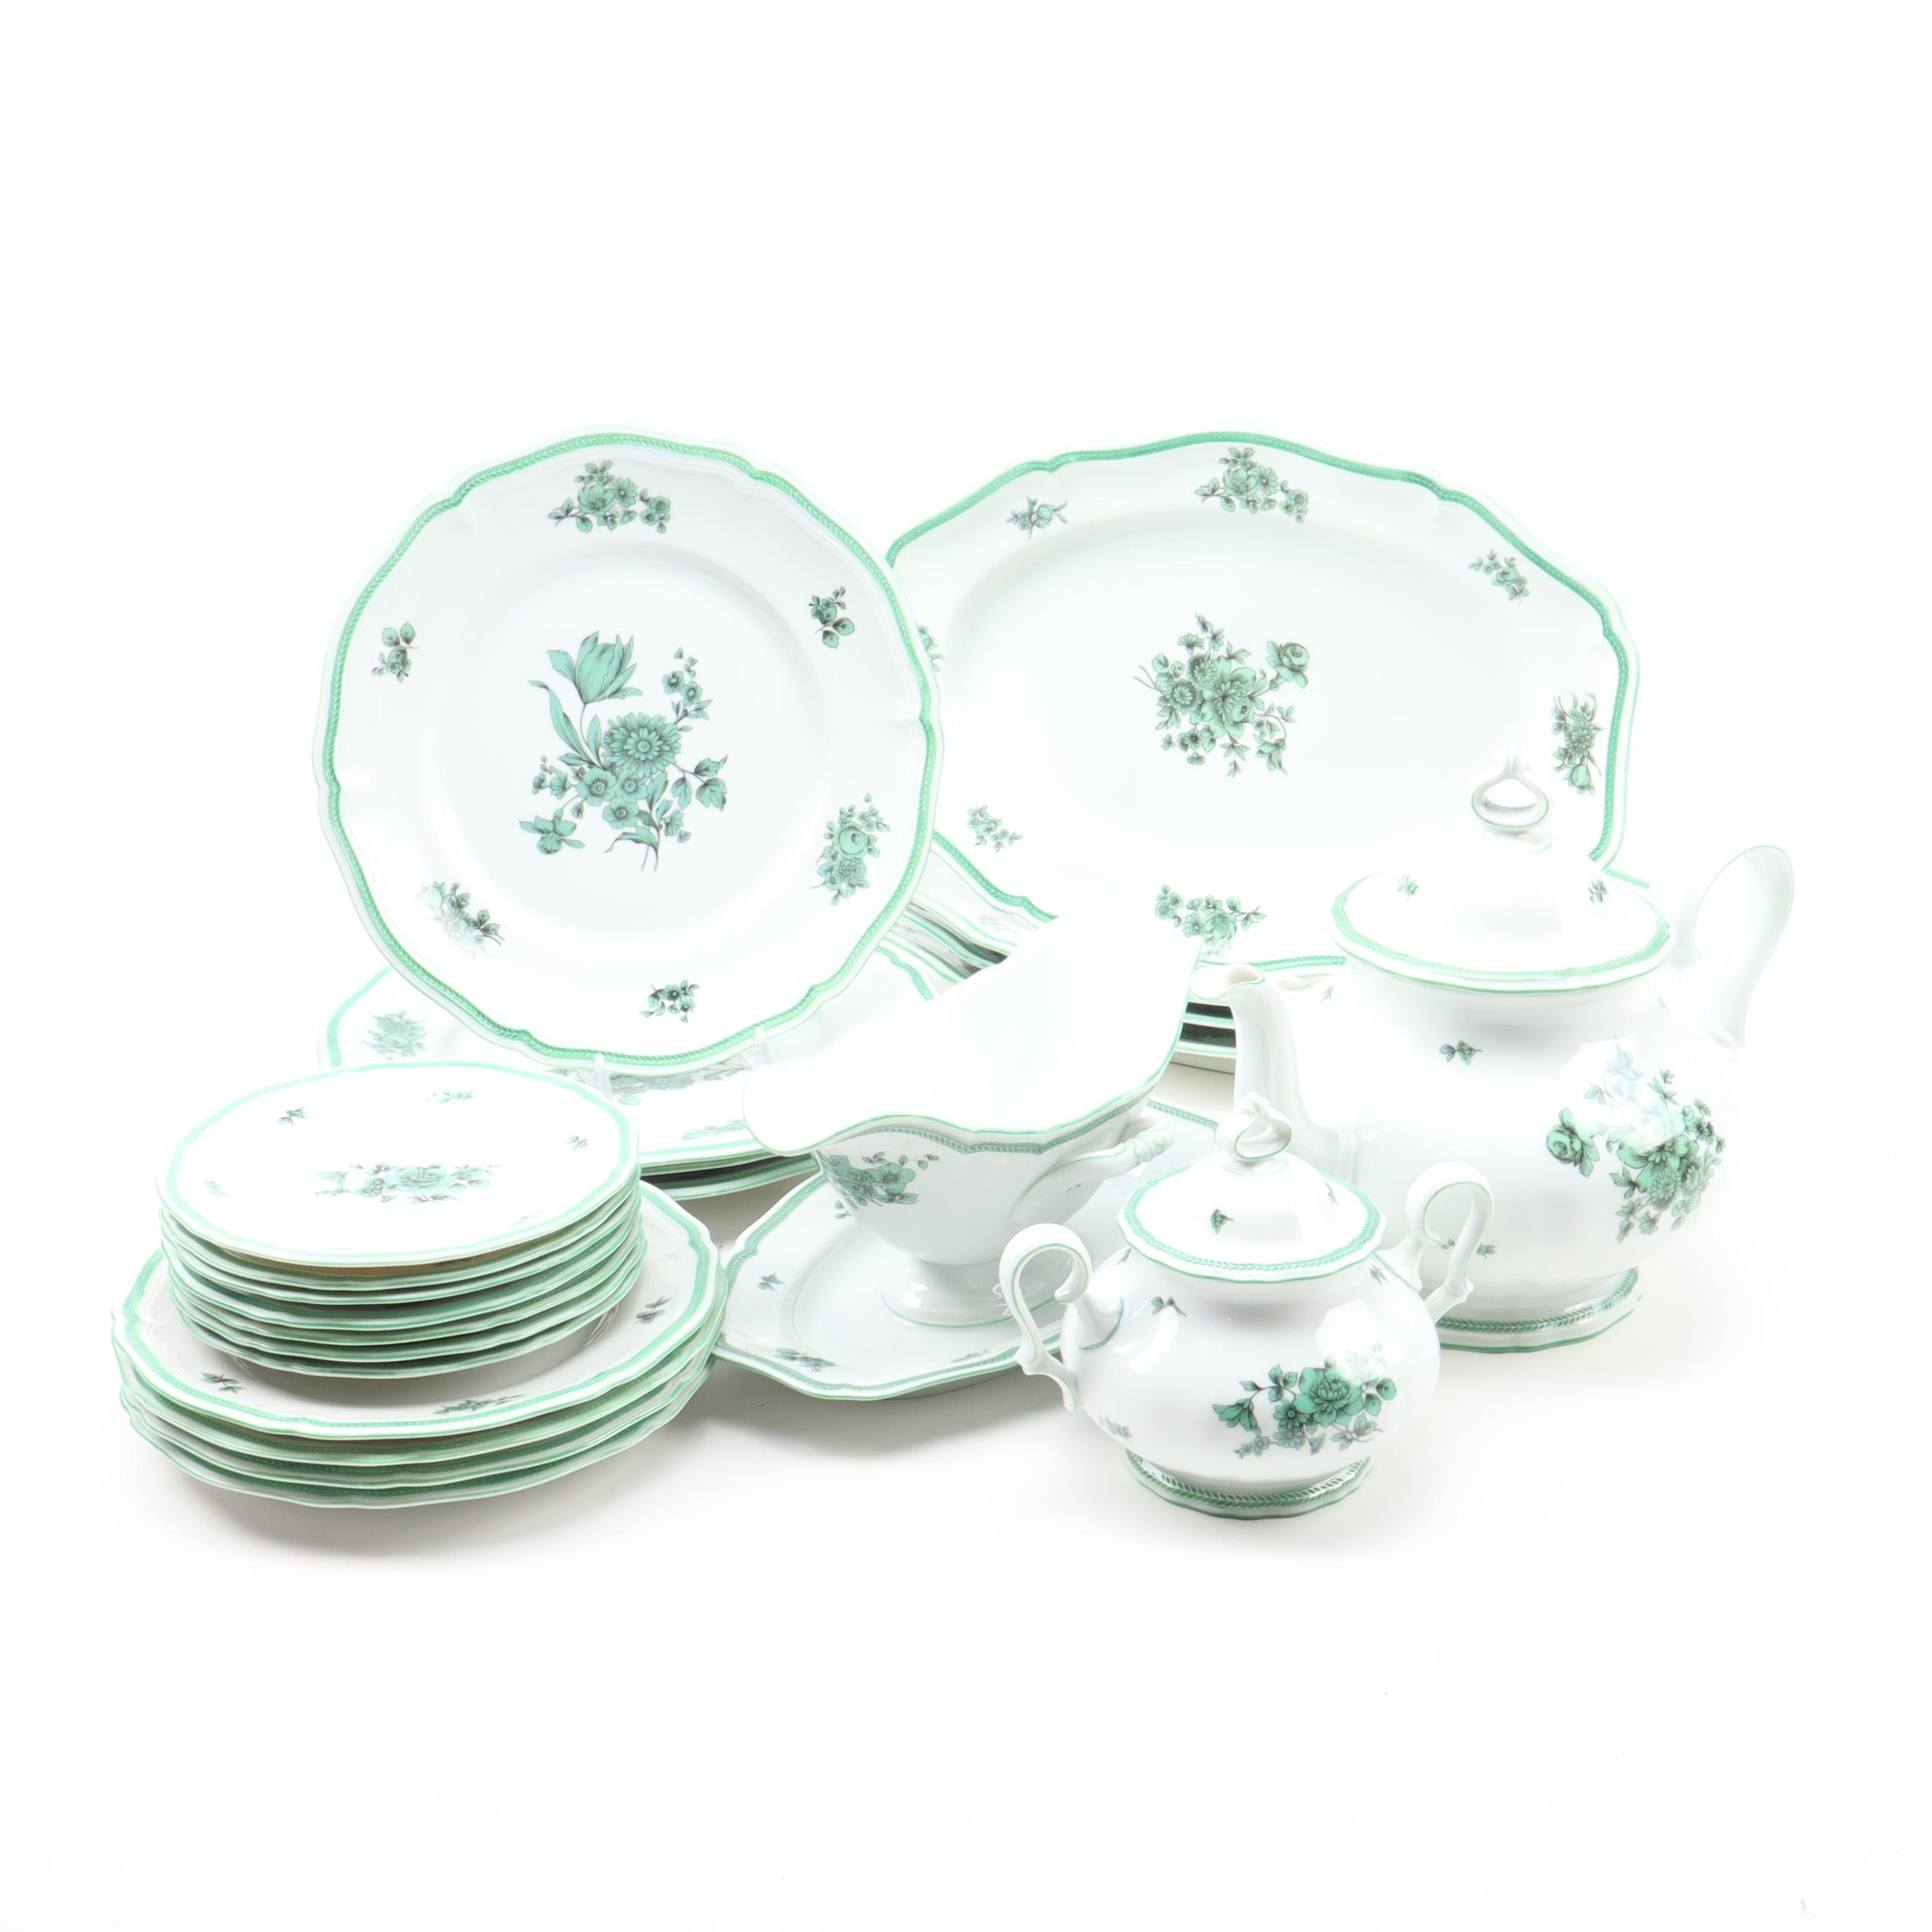 Rosenthal Green Chippendale Dinner and Serveware